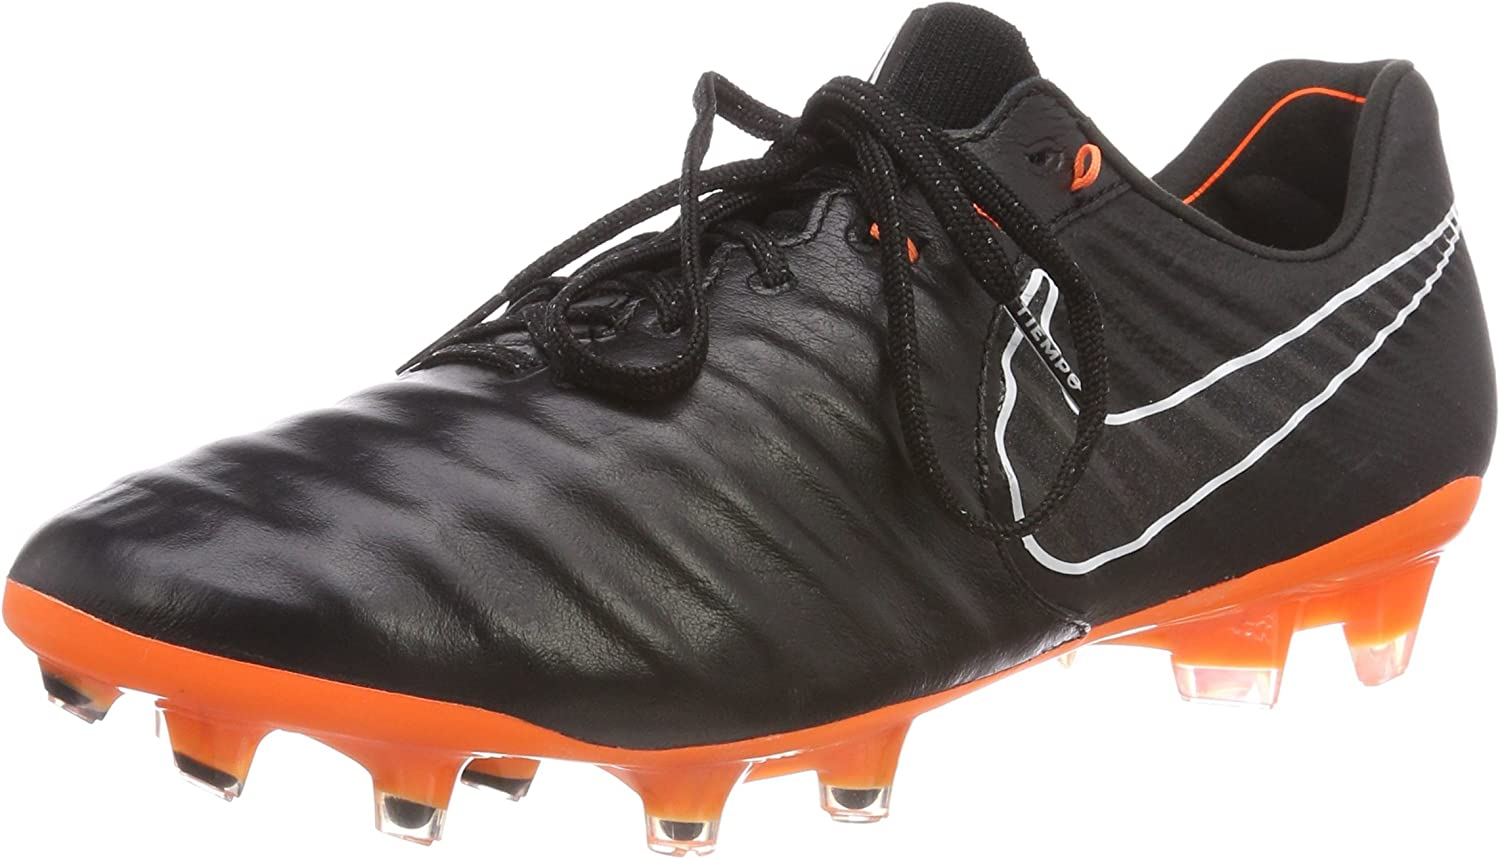 Amado término análogo Lijadoras  Amazon.com | Nike Tiempo Legend 7 Elite FG Cleats [Black] (7) | Soccer